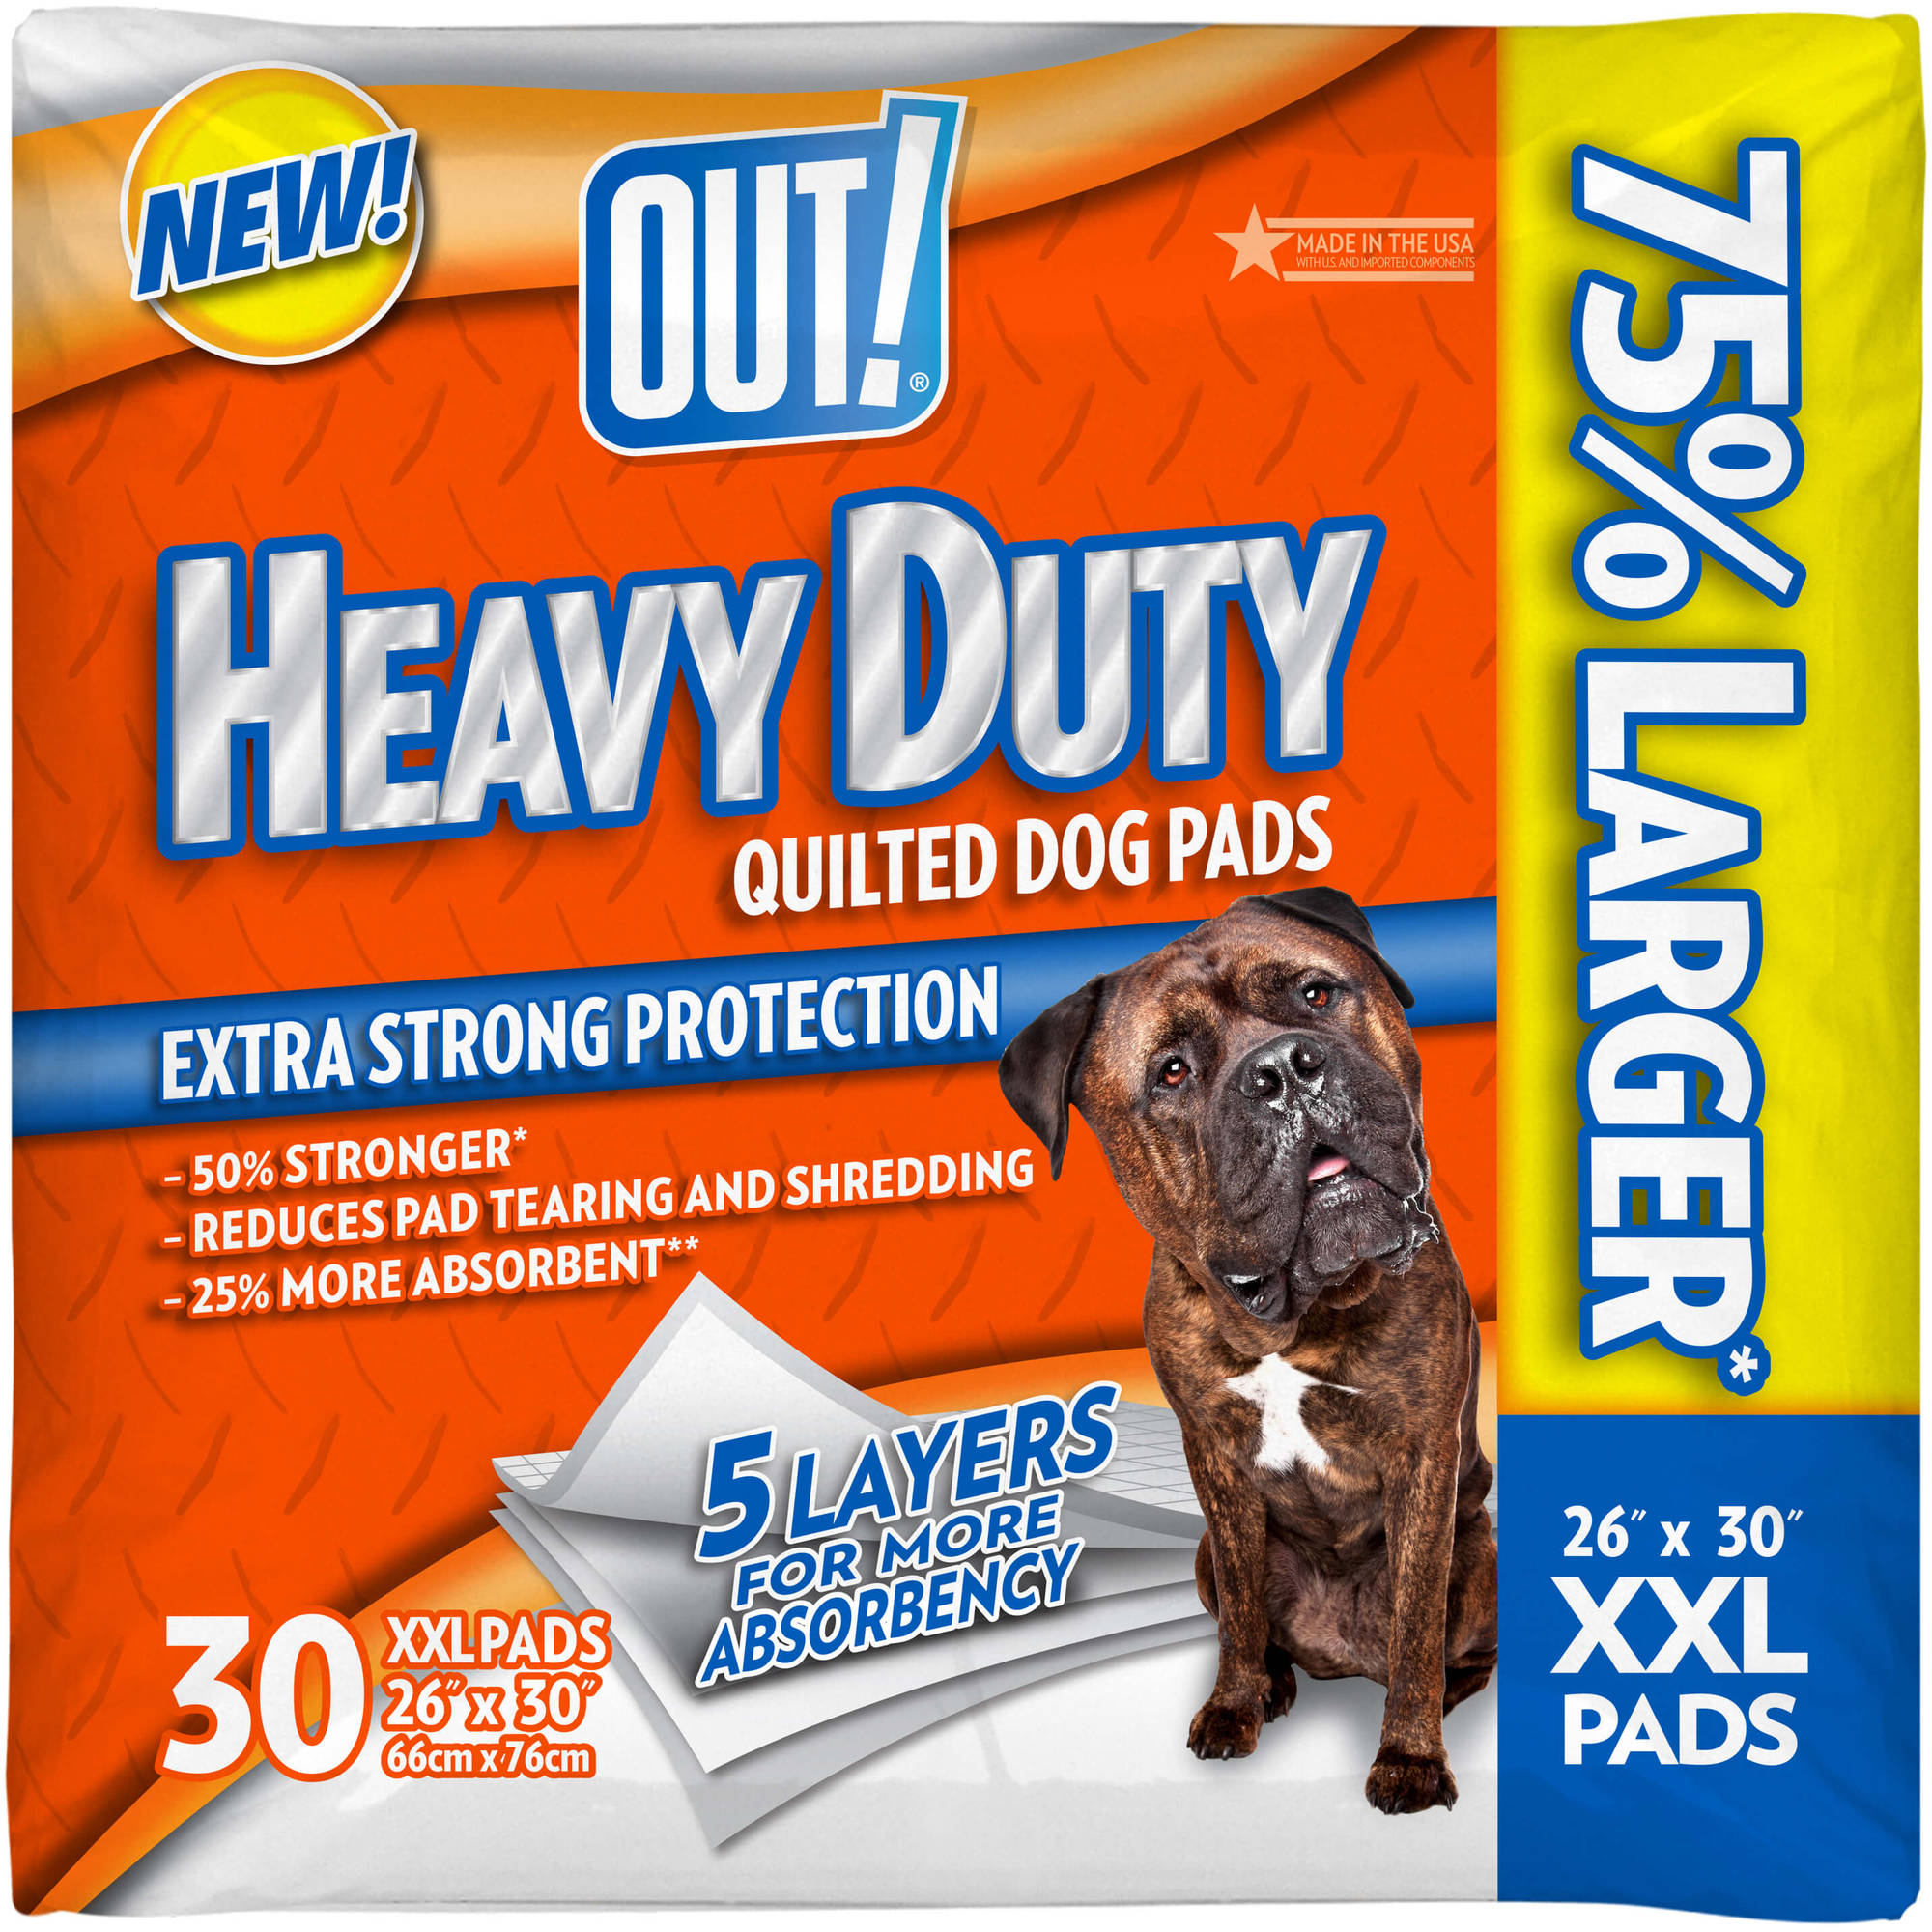 OUT! Heavy-Duty XXL Quilted Dog Pads, 30ct